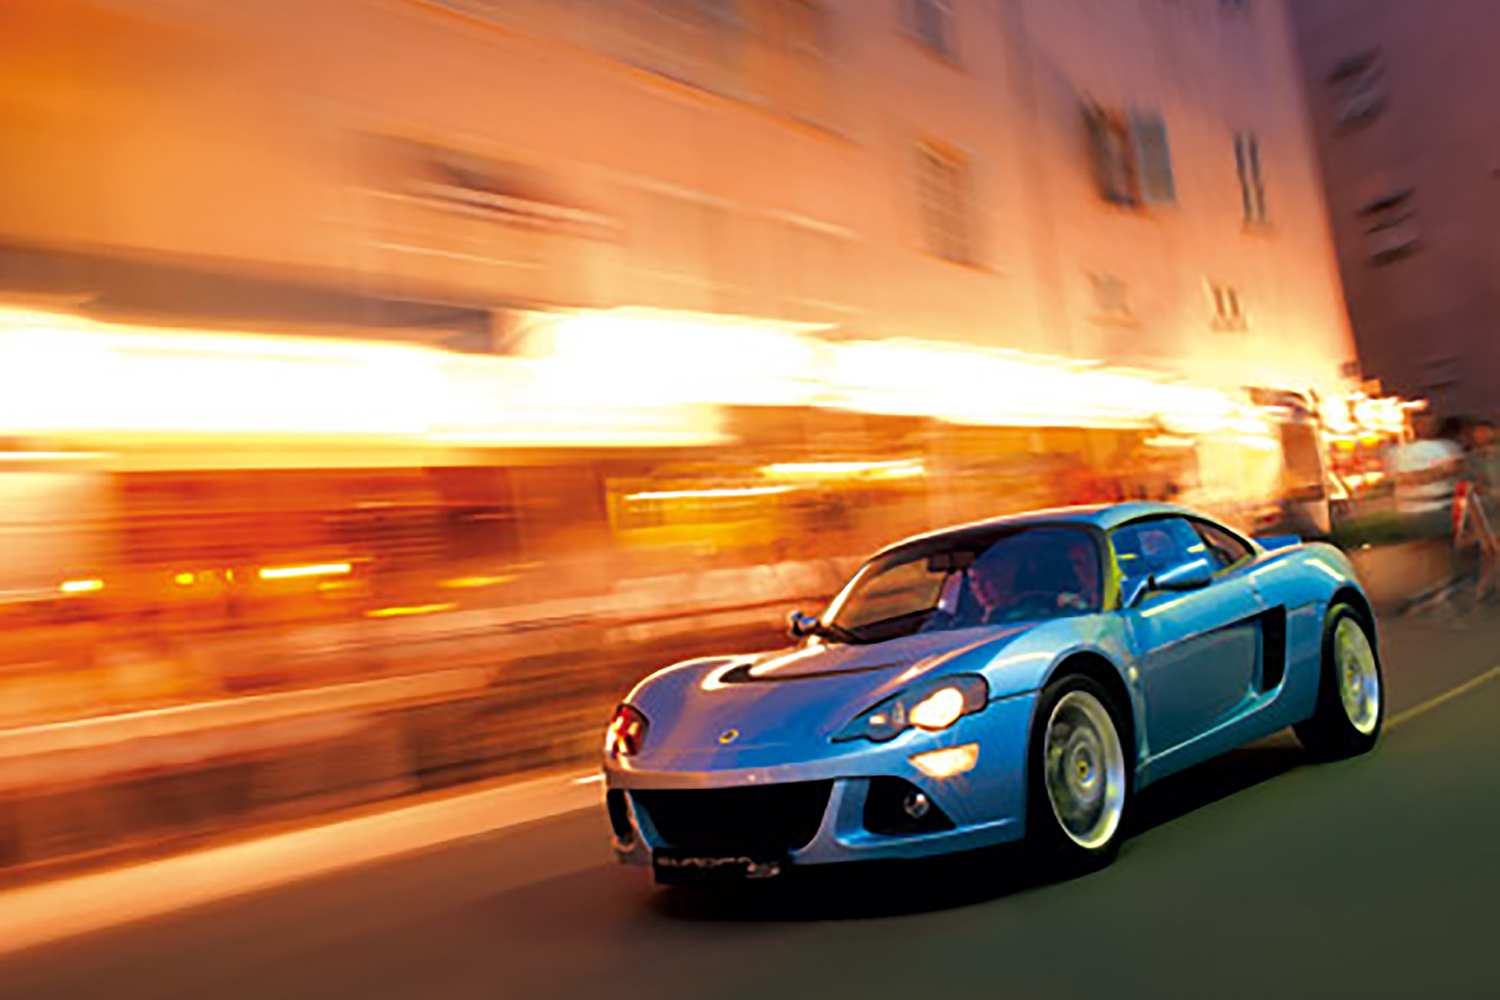 Lotus Cars - retouched image